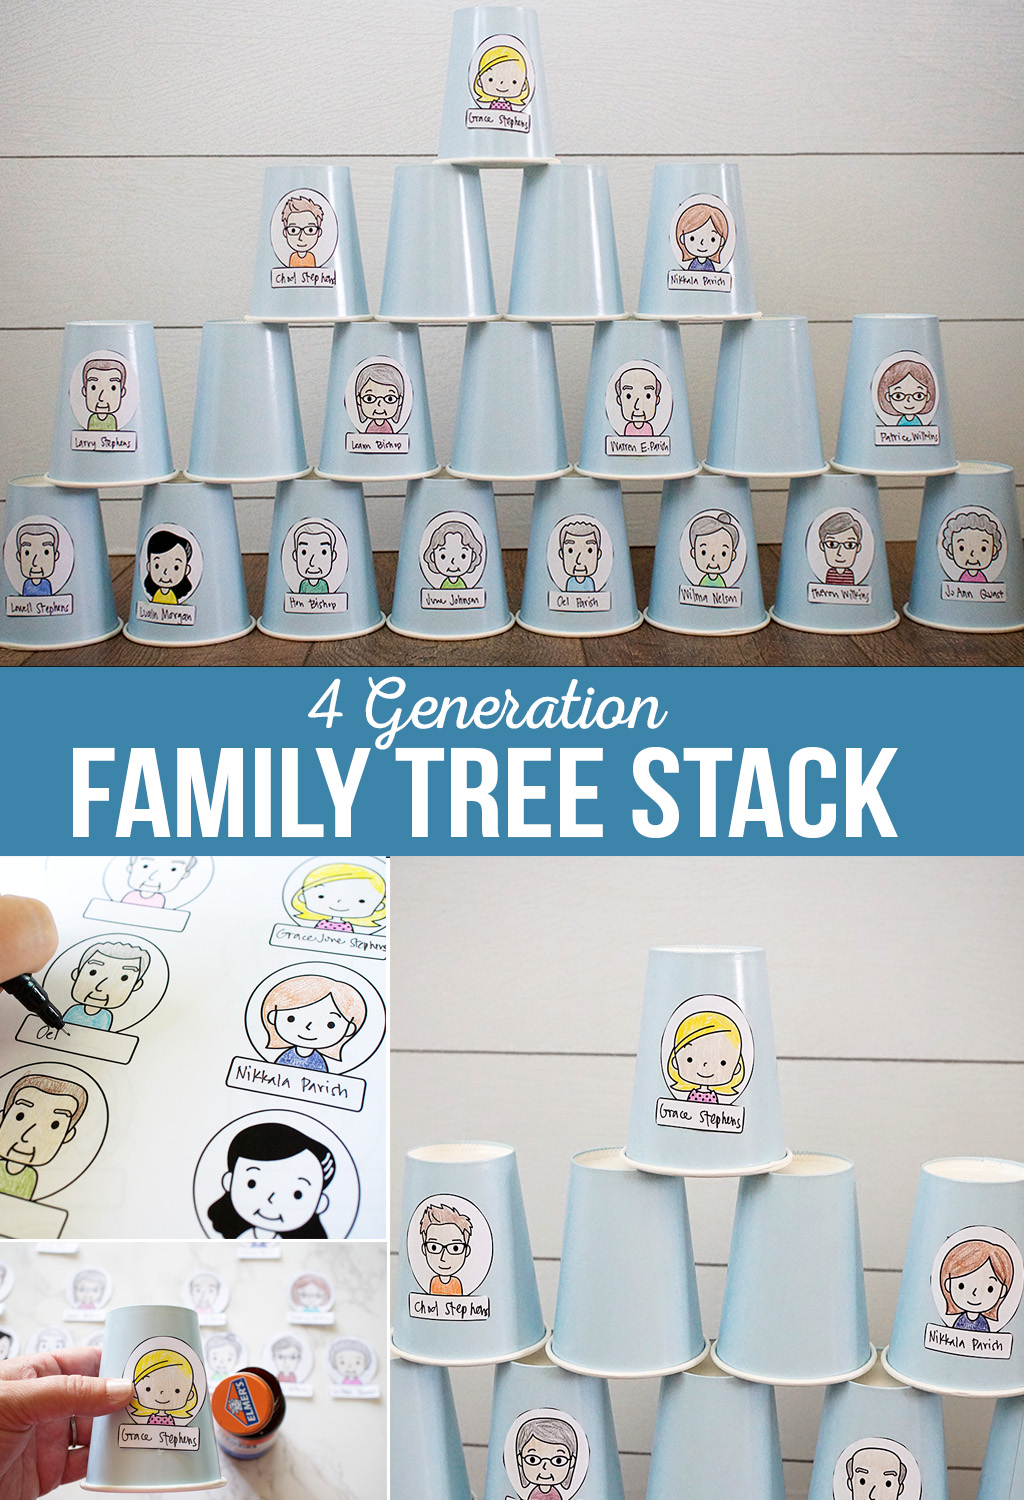 4 Generation Family Cup Stack | Get to know your family tree with a fun cup stack activity! Printables and instructions to make your own family stack. #familytree #printables #activitydays #familyhomeevening